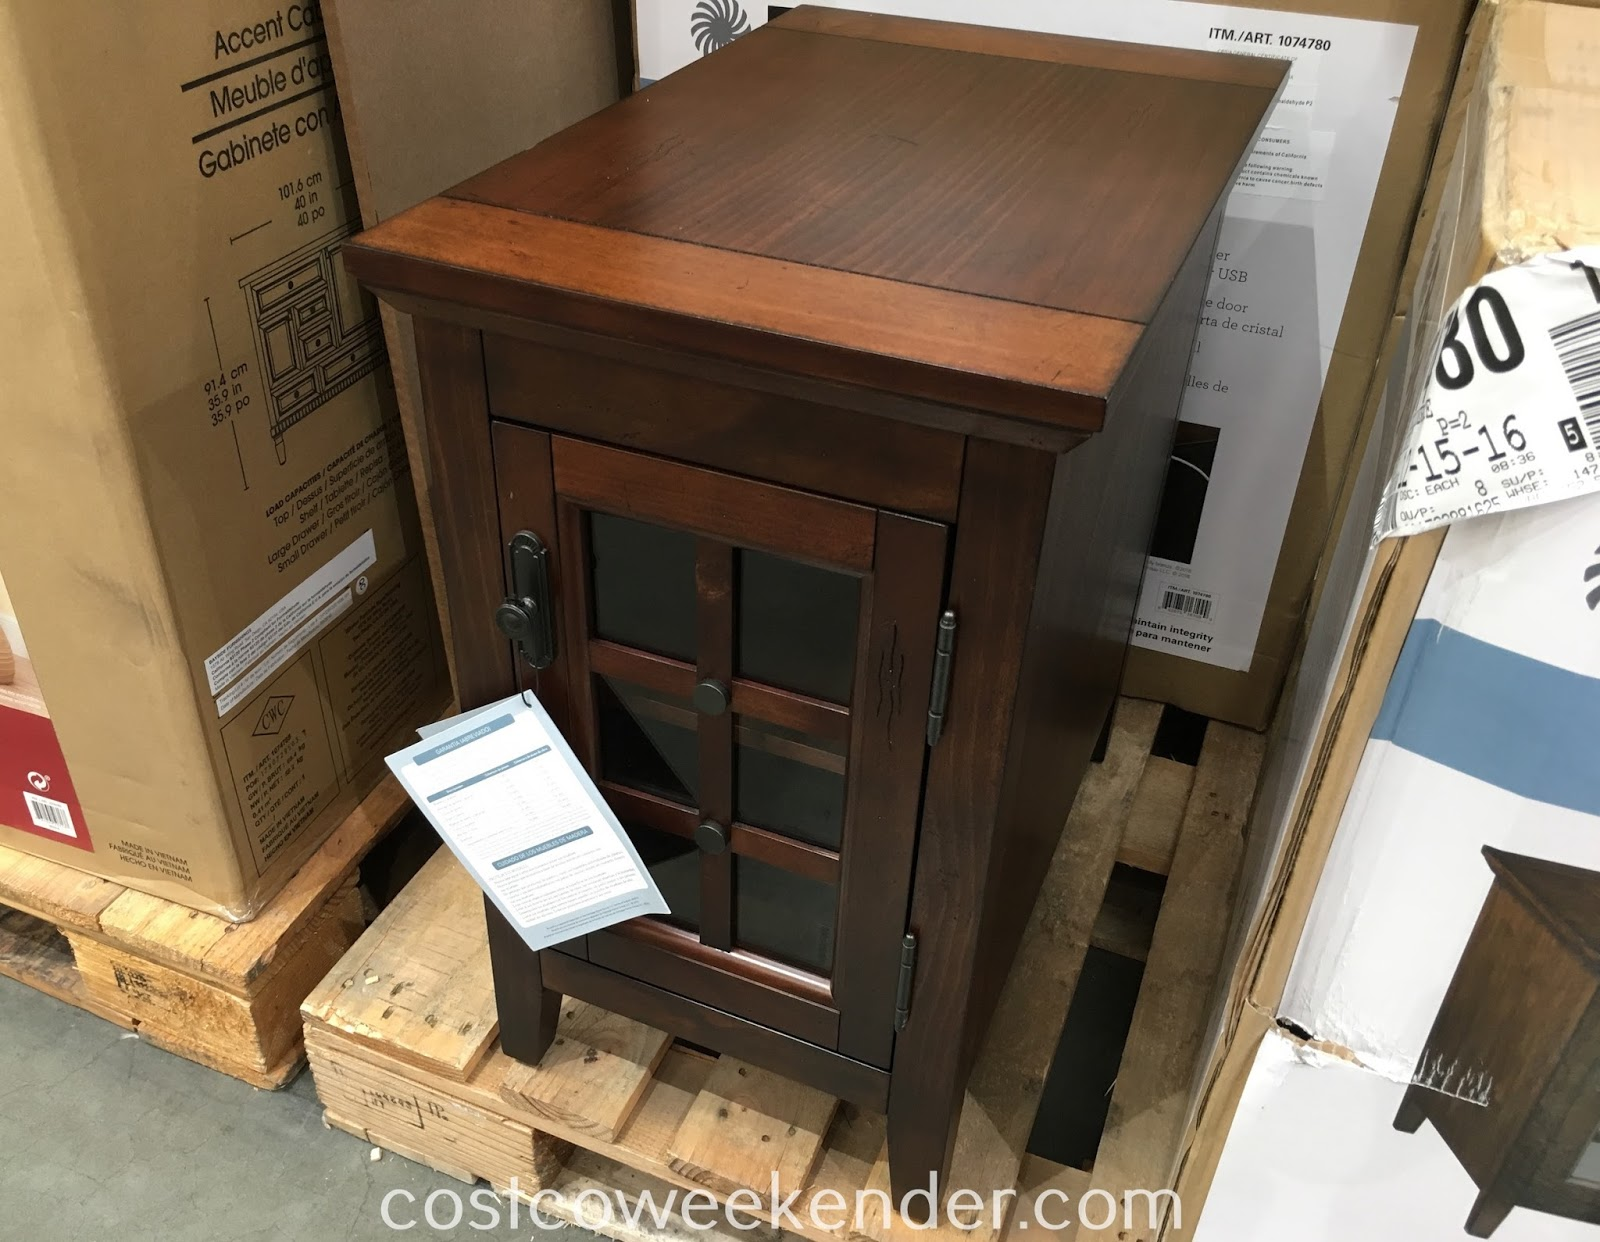 broyhill chairside table weekender whalen end the versatile your home living room family acme housing ethan allen console cabinet copper top tree coat rack magnussen ashby